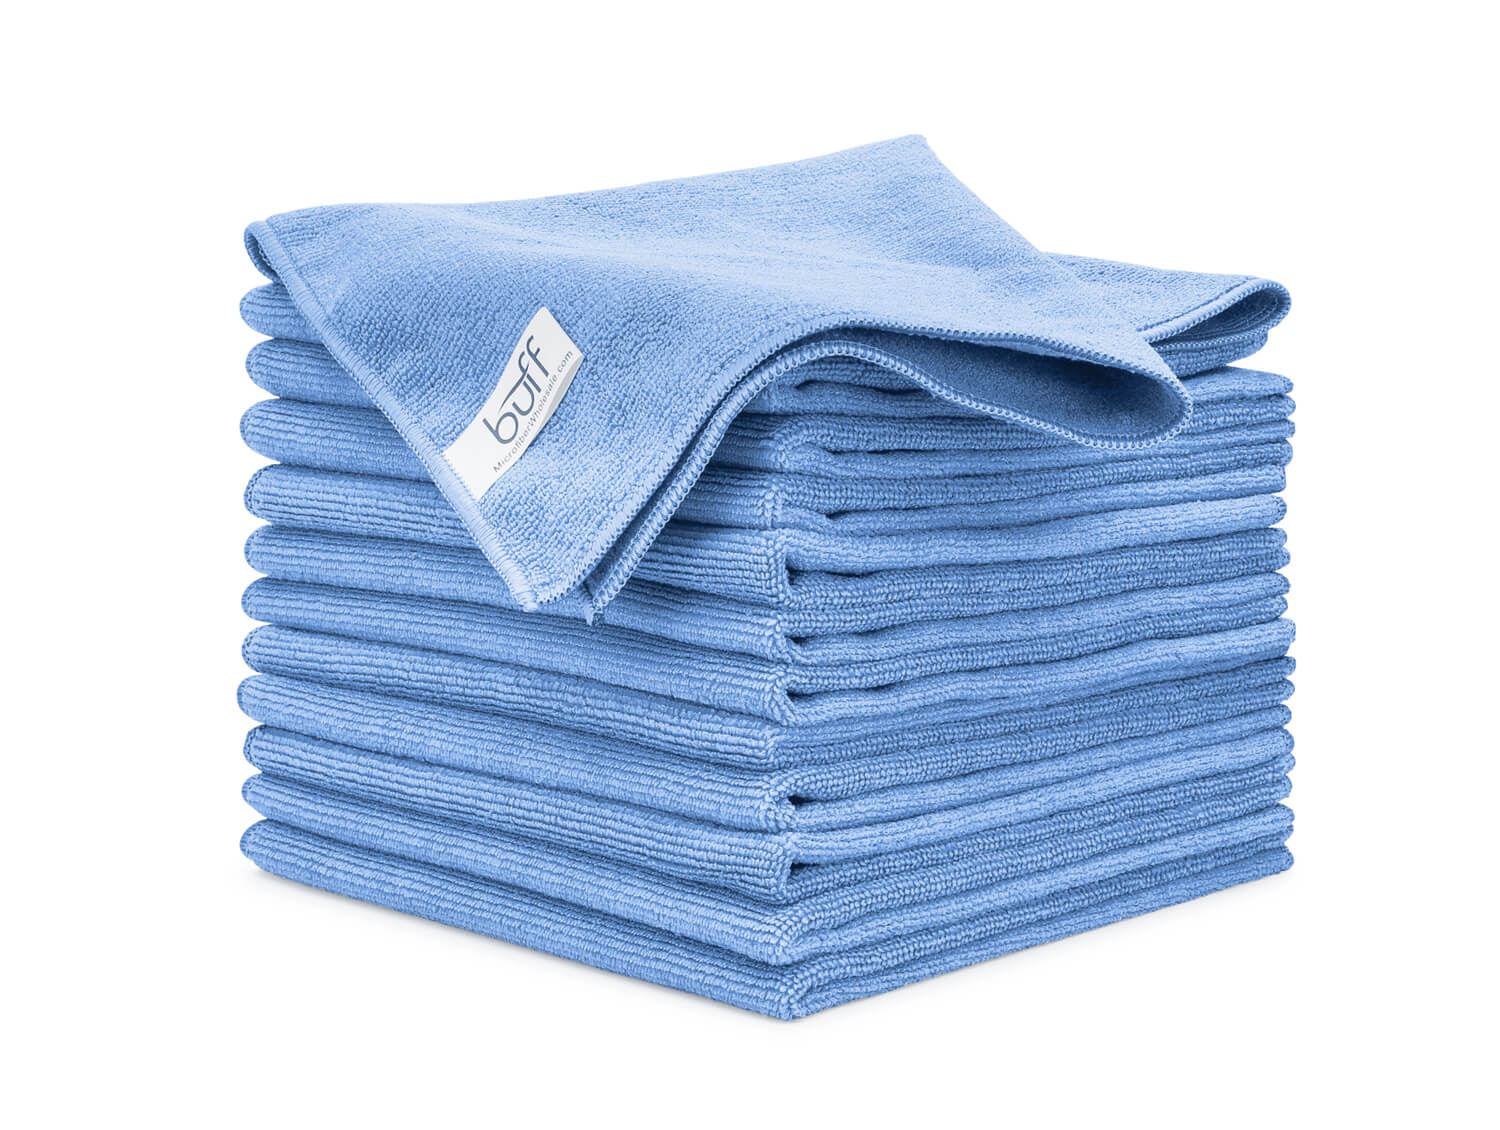 Blue Microfiber Towels 12 Pack